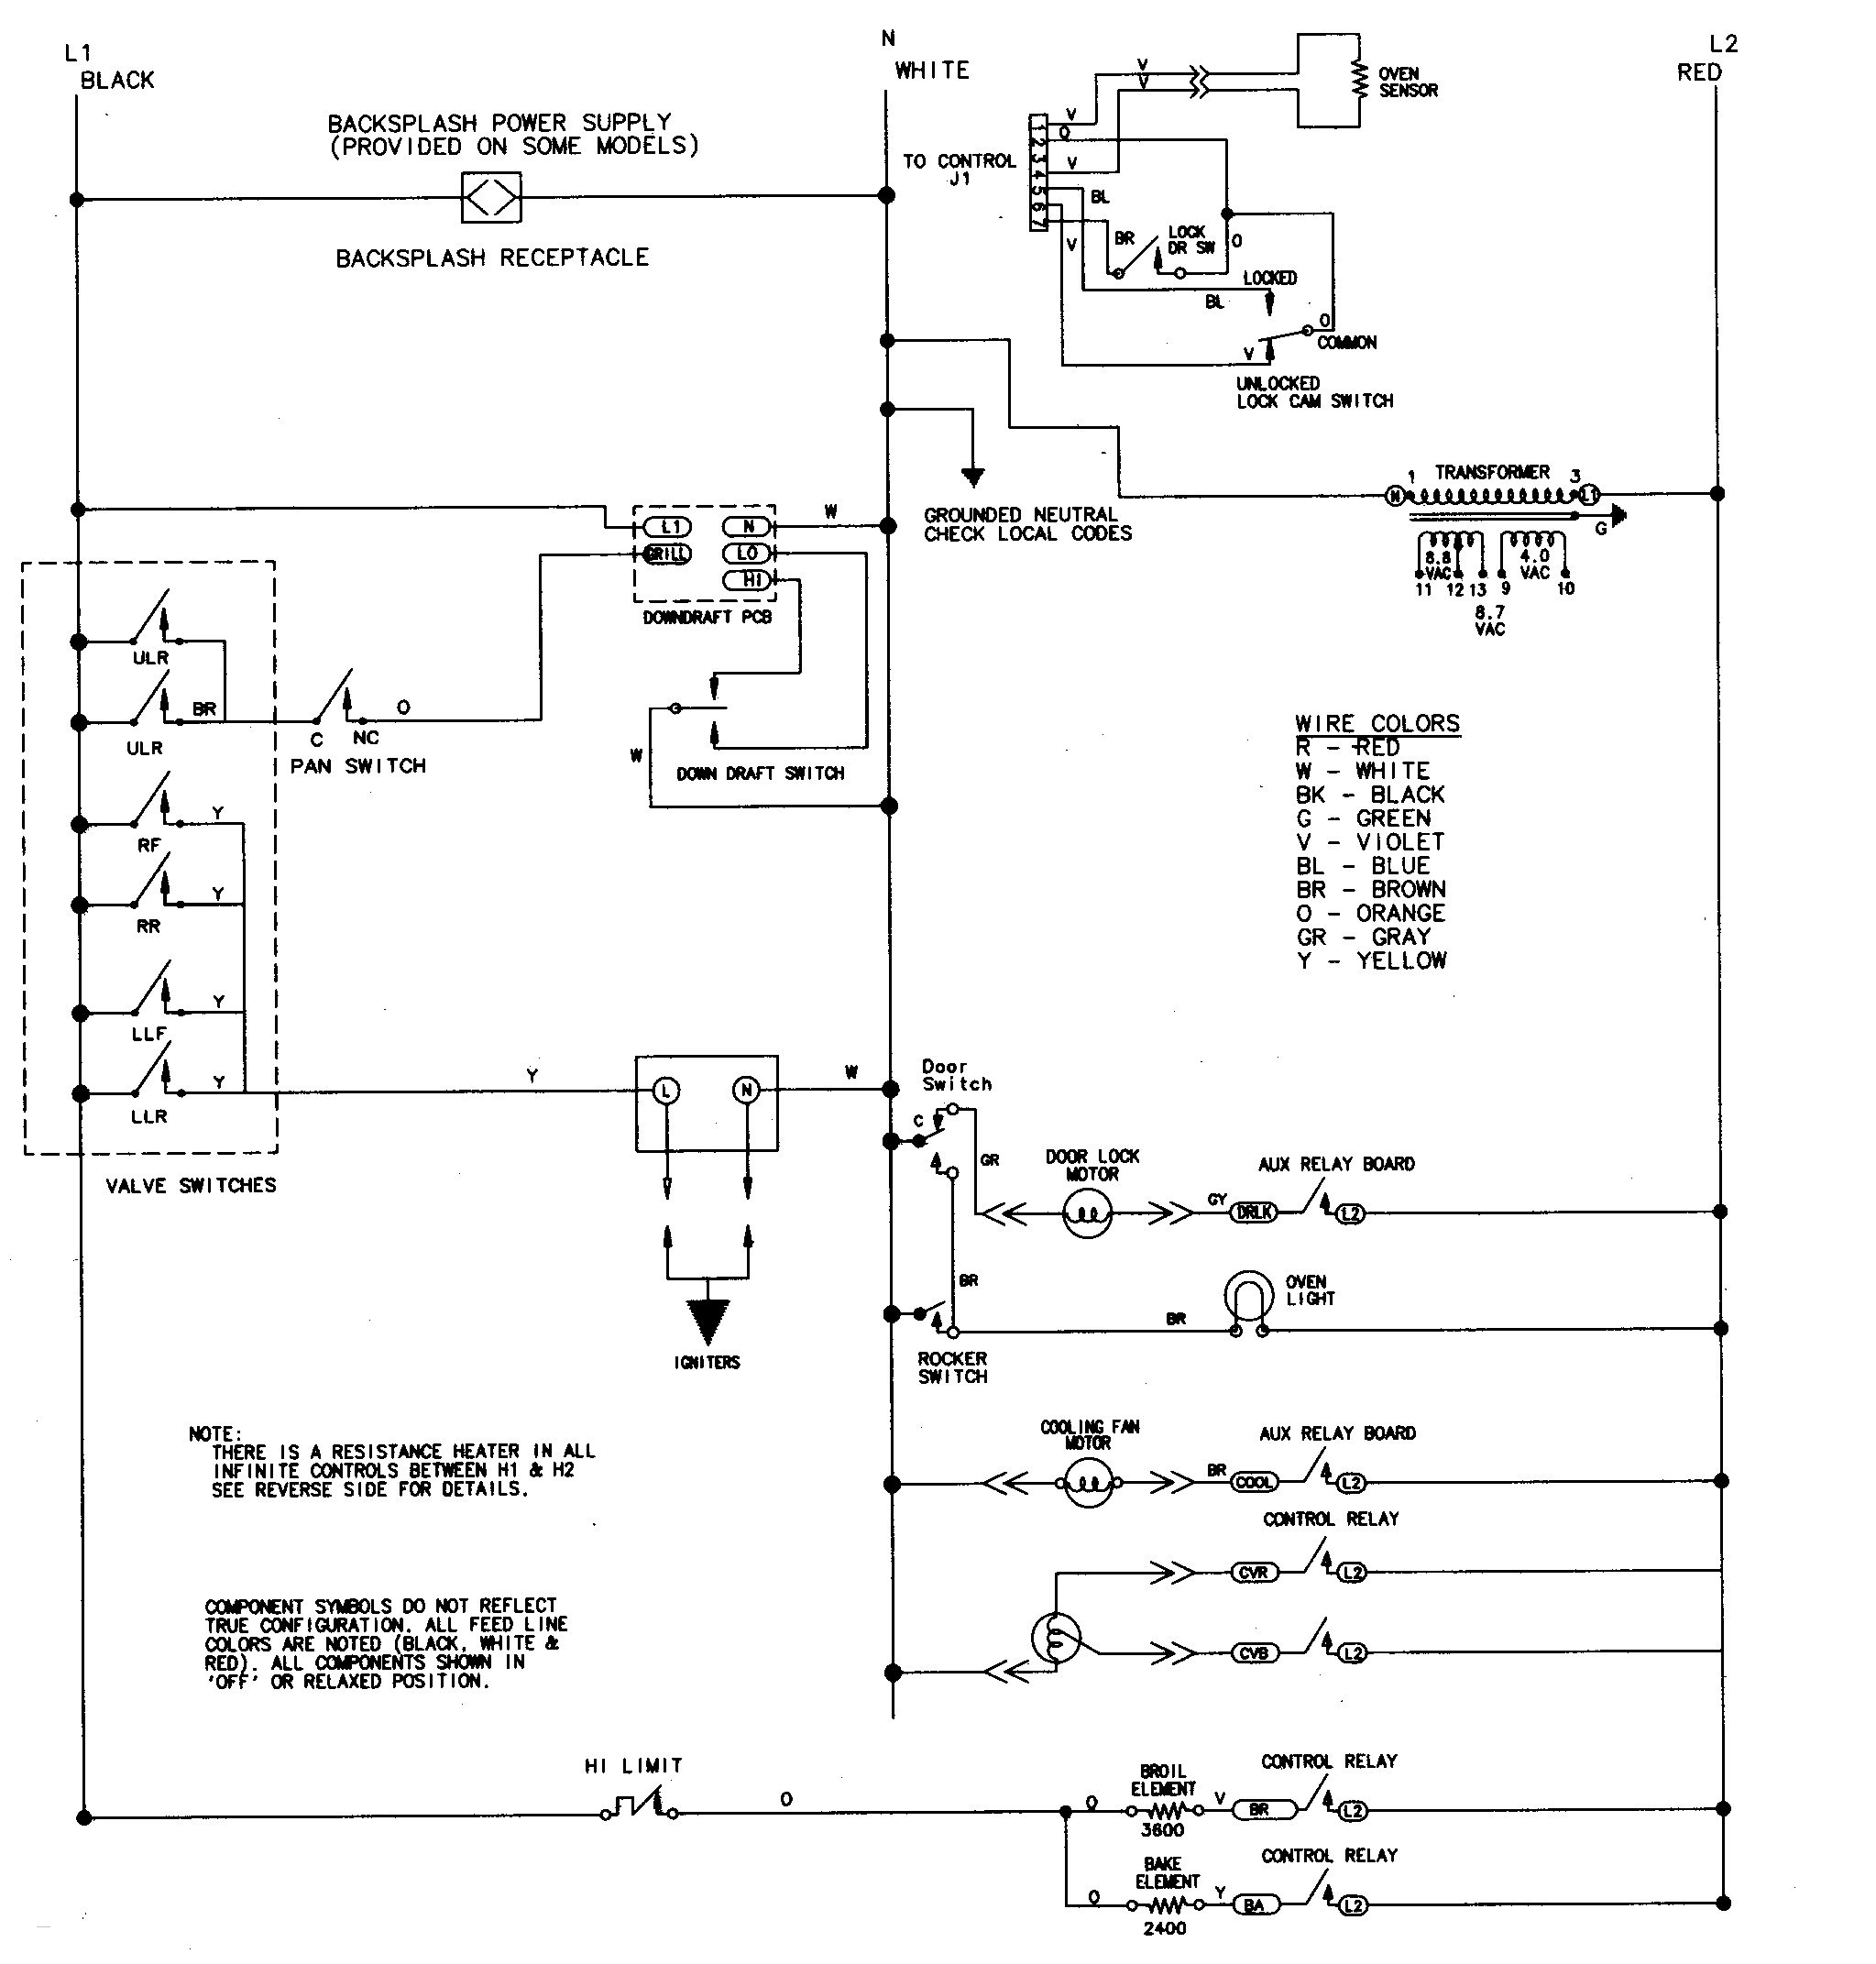 Simple Circuit Diagrams Wiring Diagram Image Quiz Board Electric Beautiful Famous Basic Oven Electrical